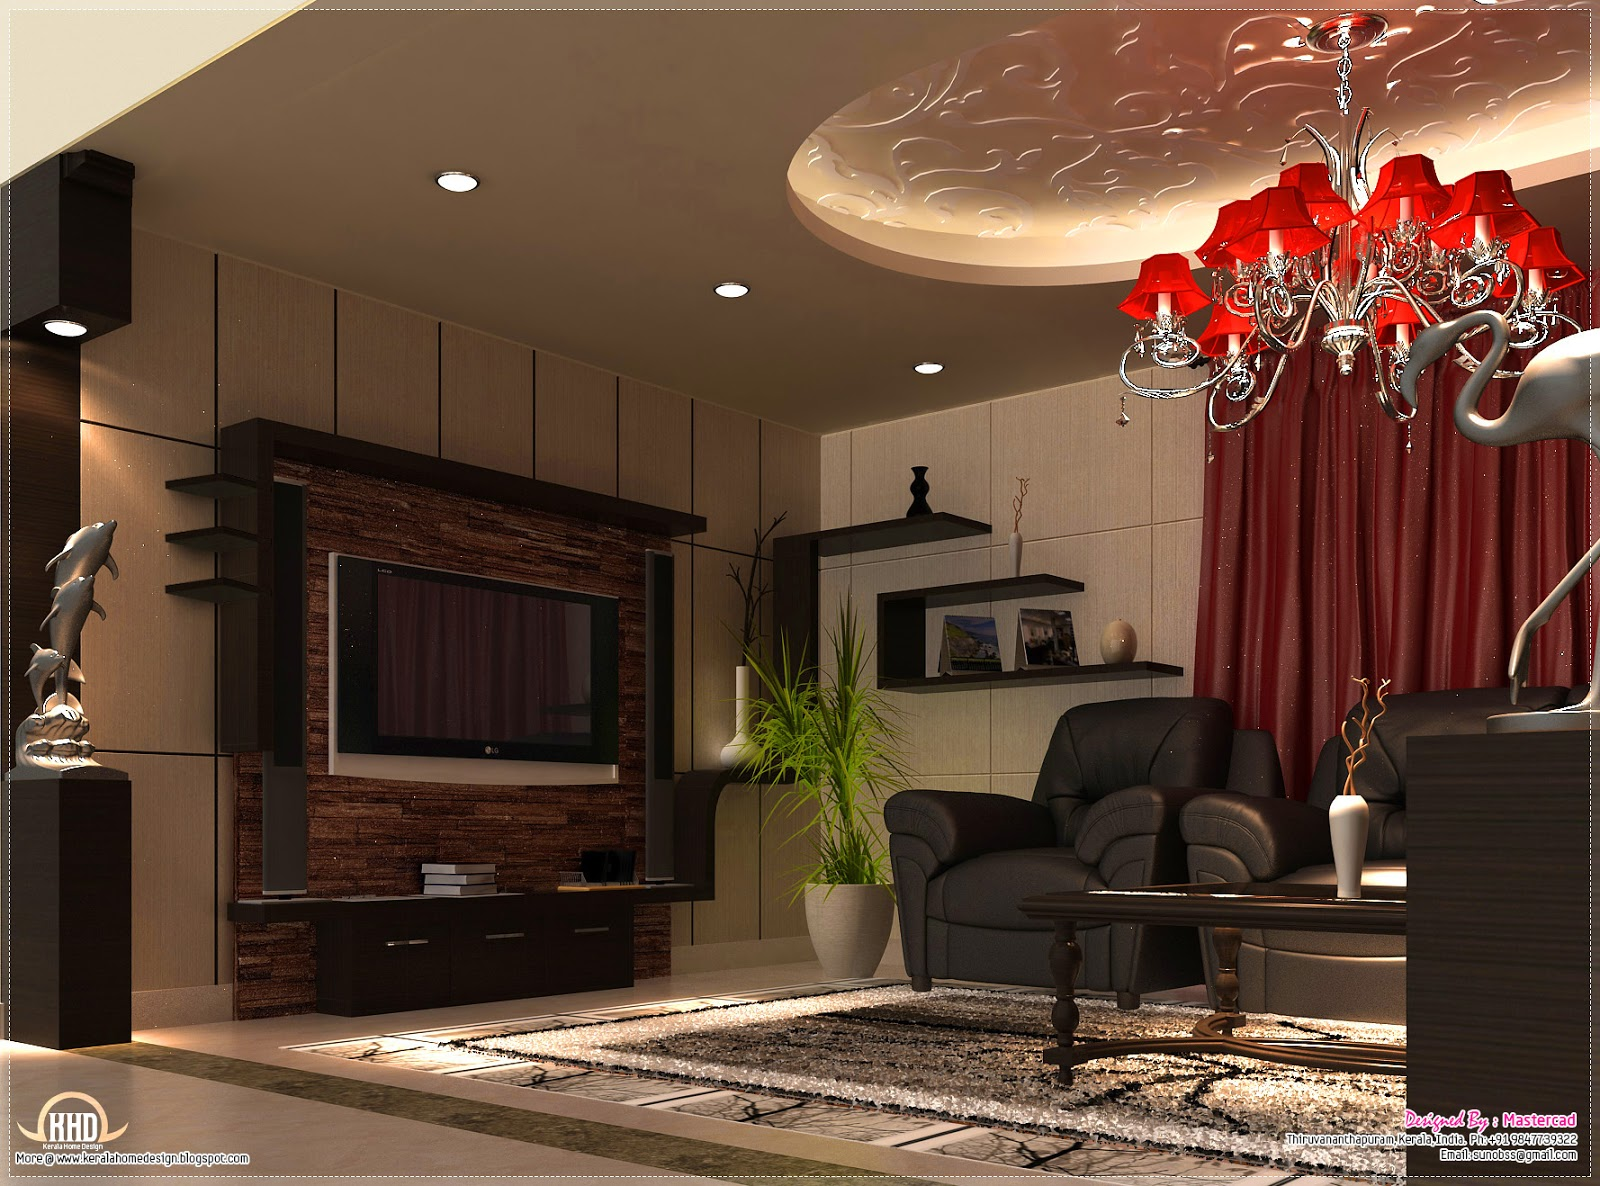 Interior design ideas kerala home design and floor plans for Interior design pictures